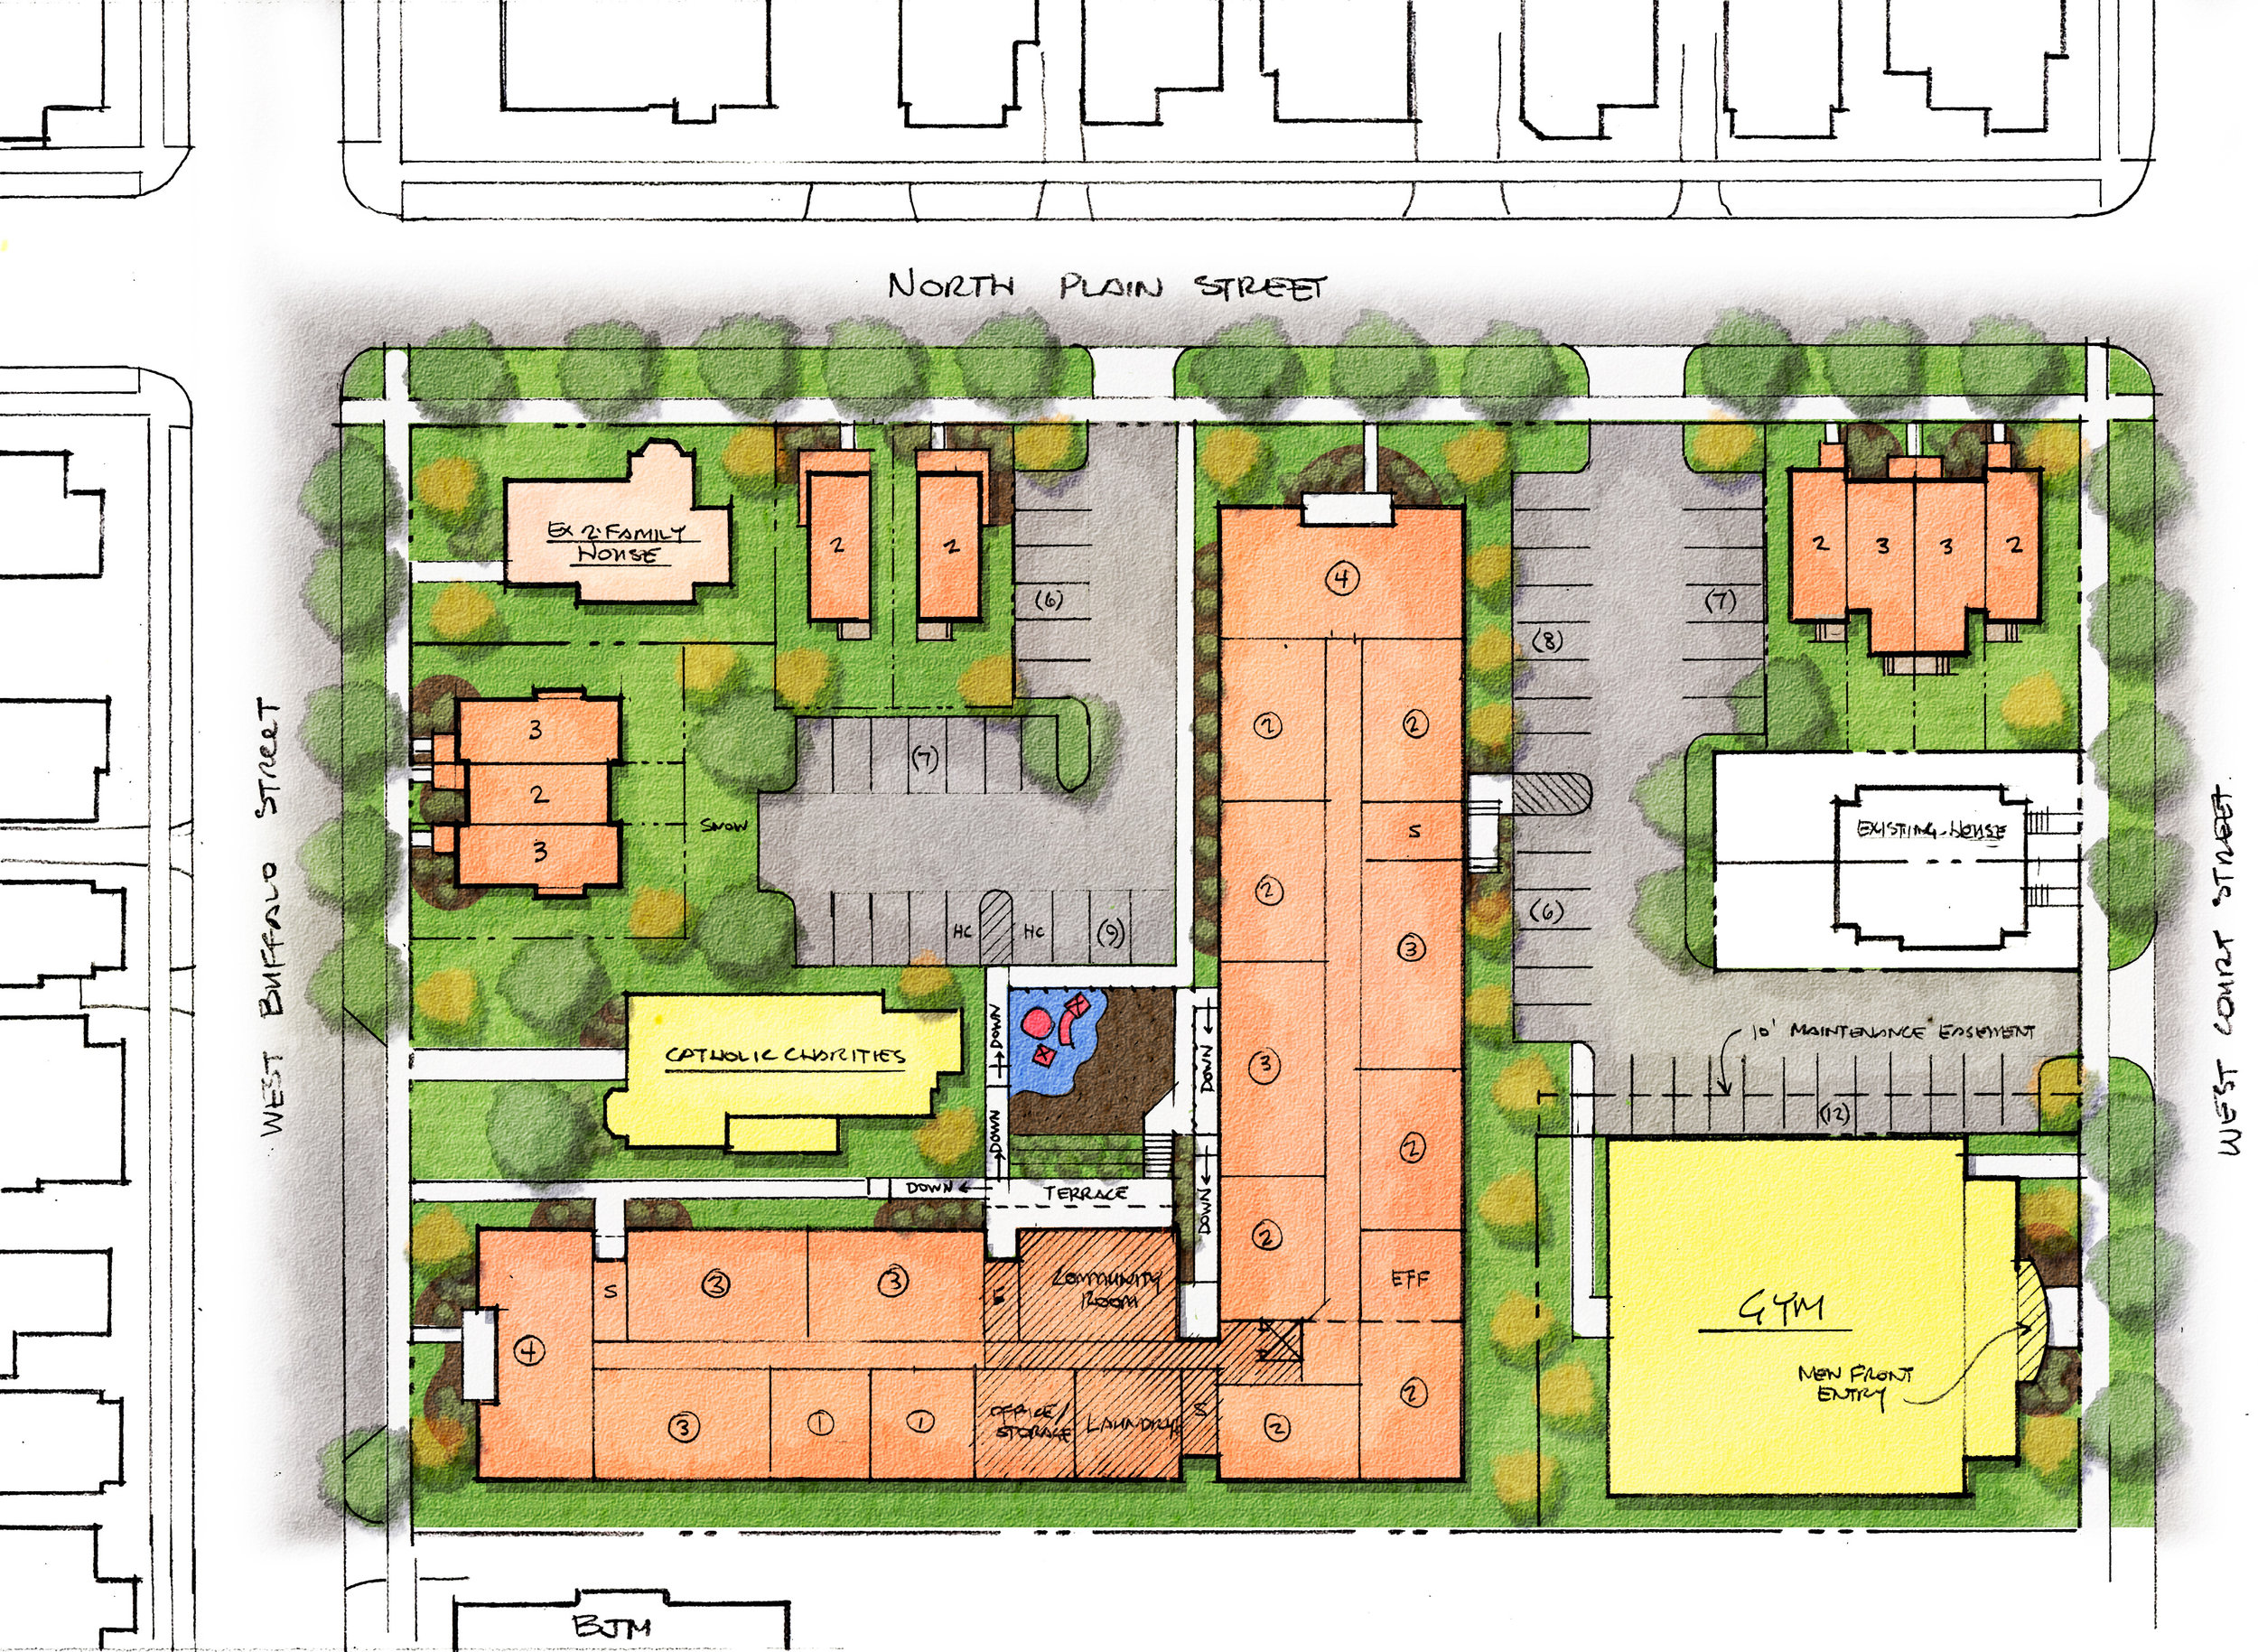 SITE PLAN - color.jpg